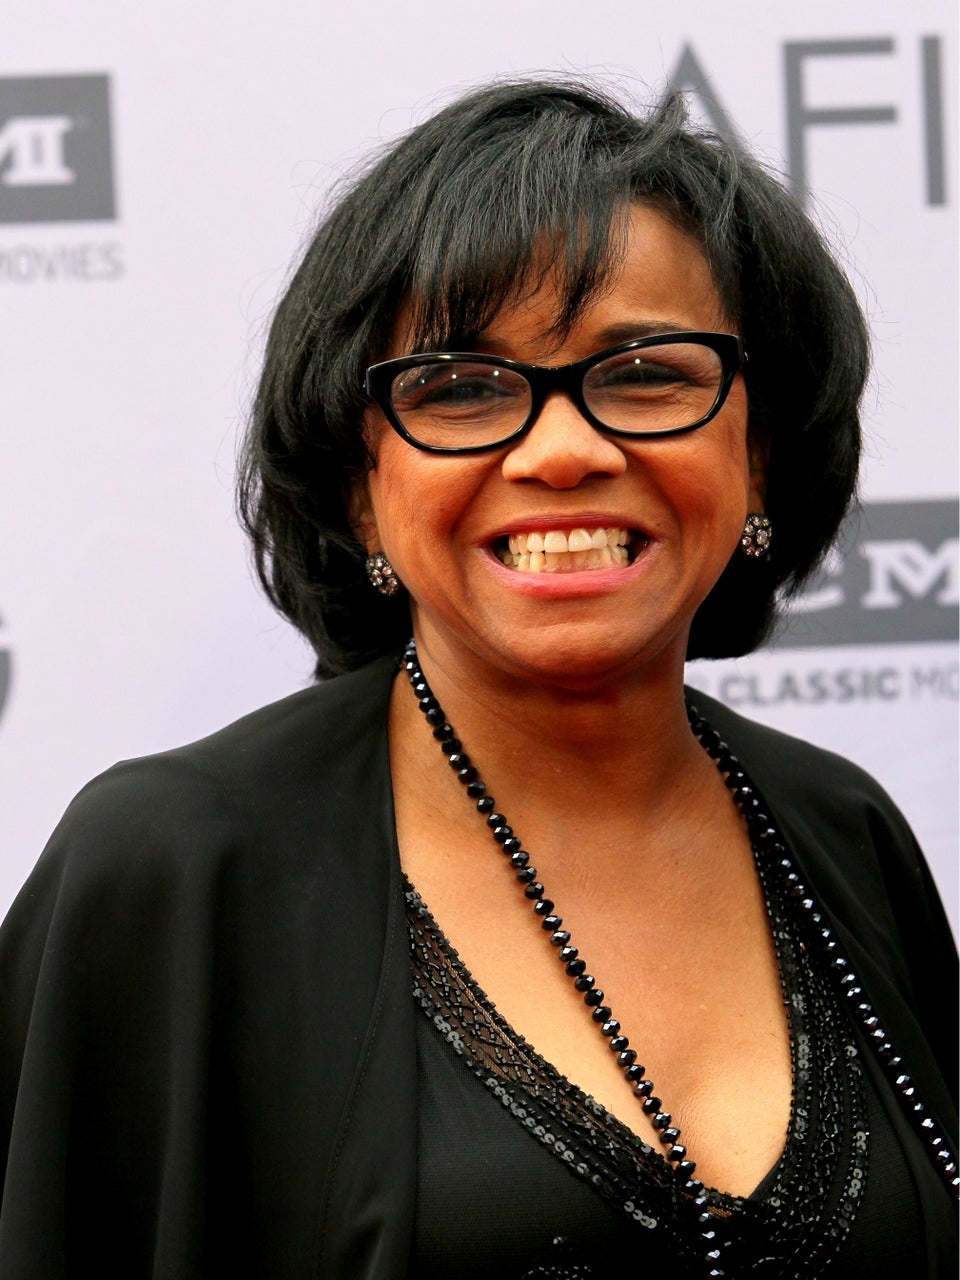 The Academy Re-Elects Cheryl Boone Isaacs As President